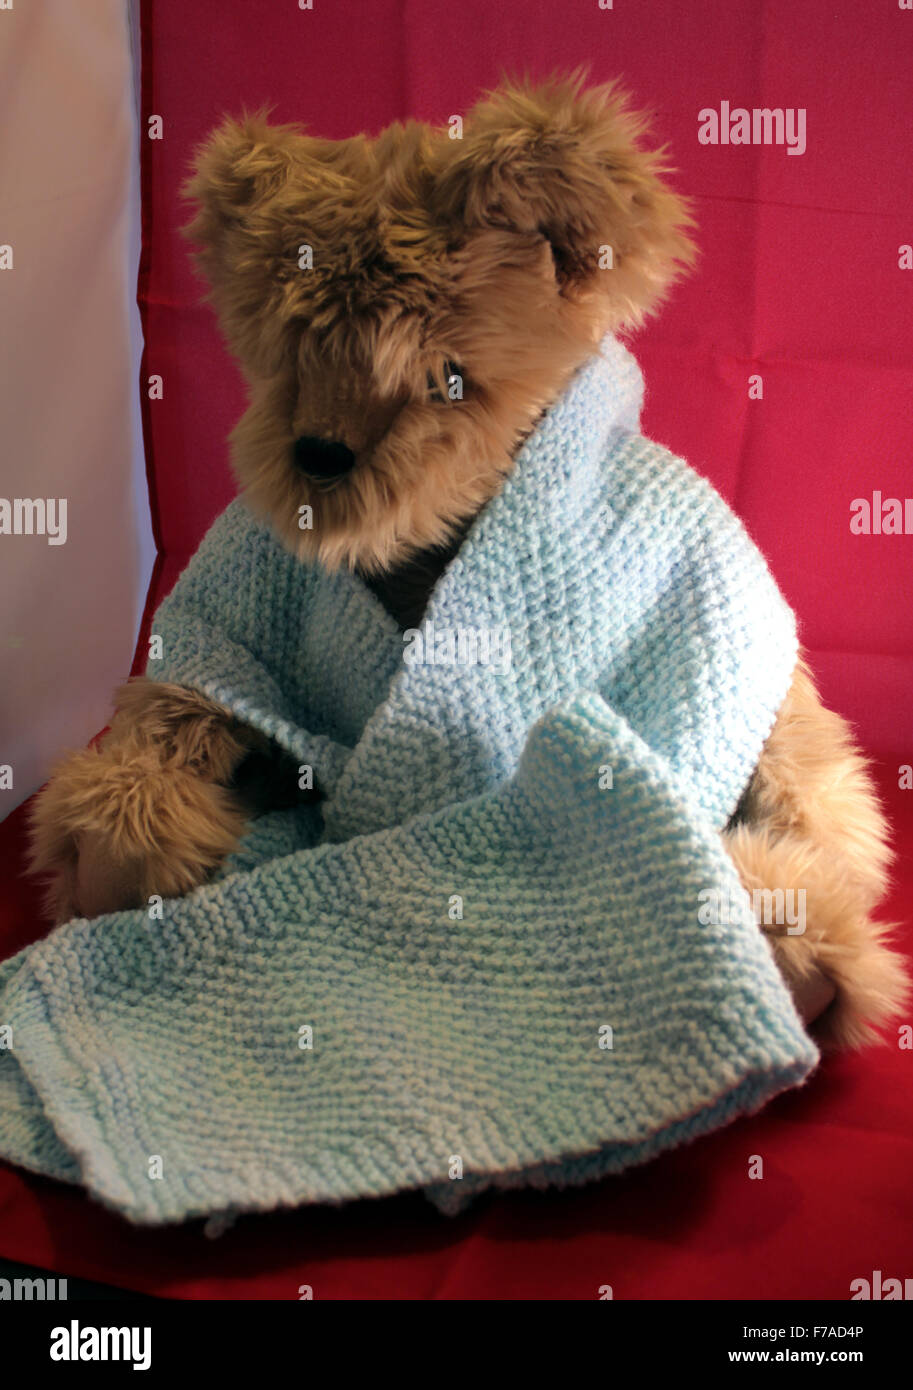 Machine Knitted Stock Photos Images Alamy Mom N Bab Sweater Blue Stripe Scarf Hand Being Worn By A Teddy Bear Image